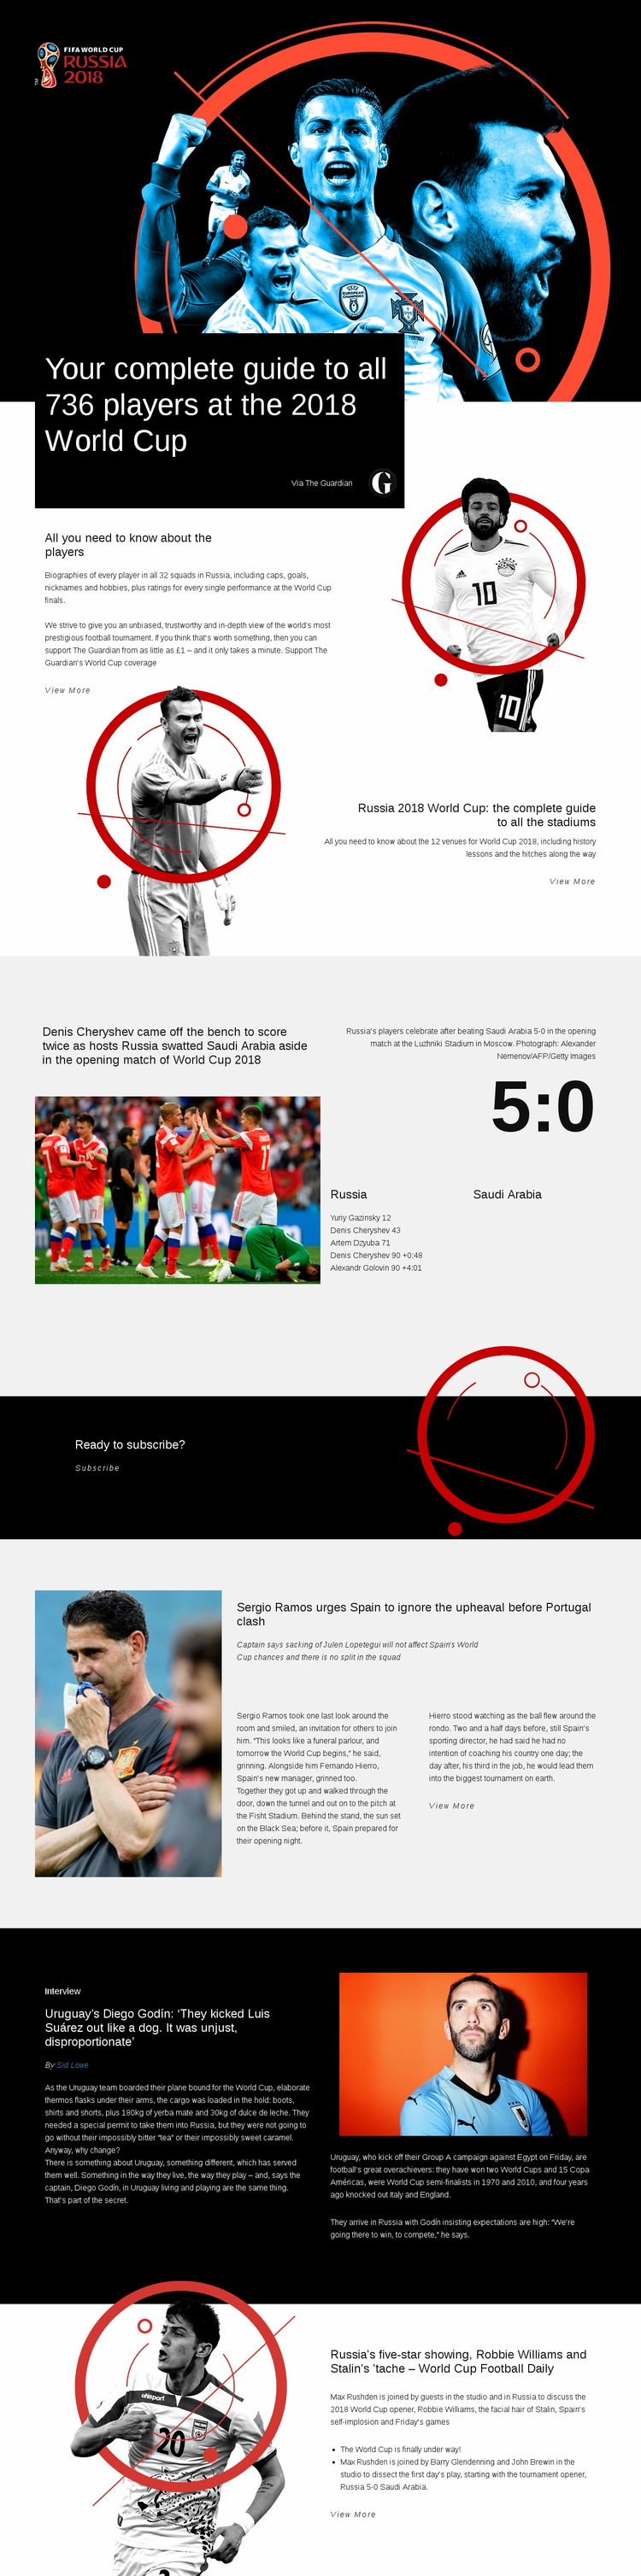 World Cup 2018 Web Page Design